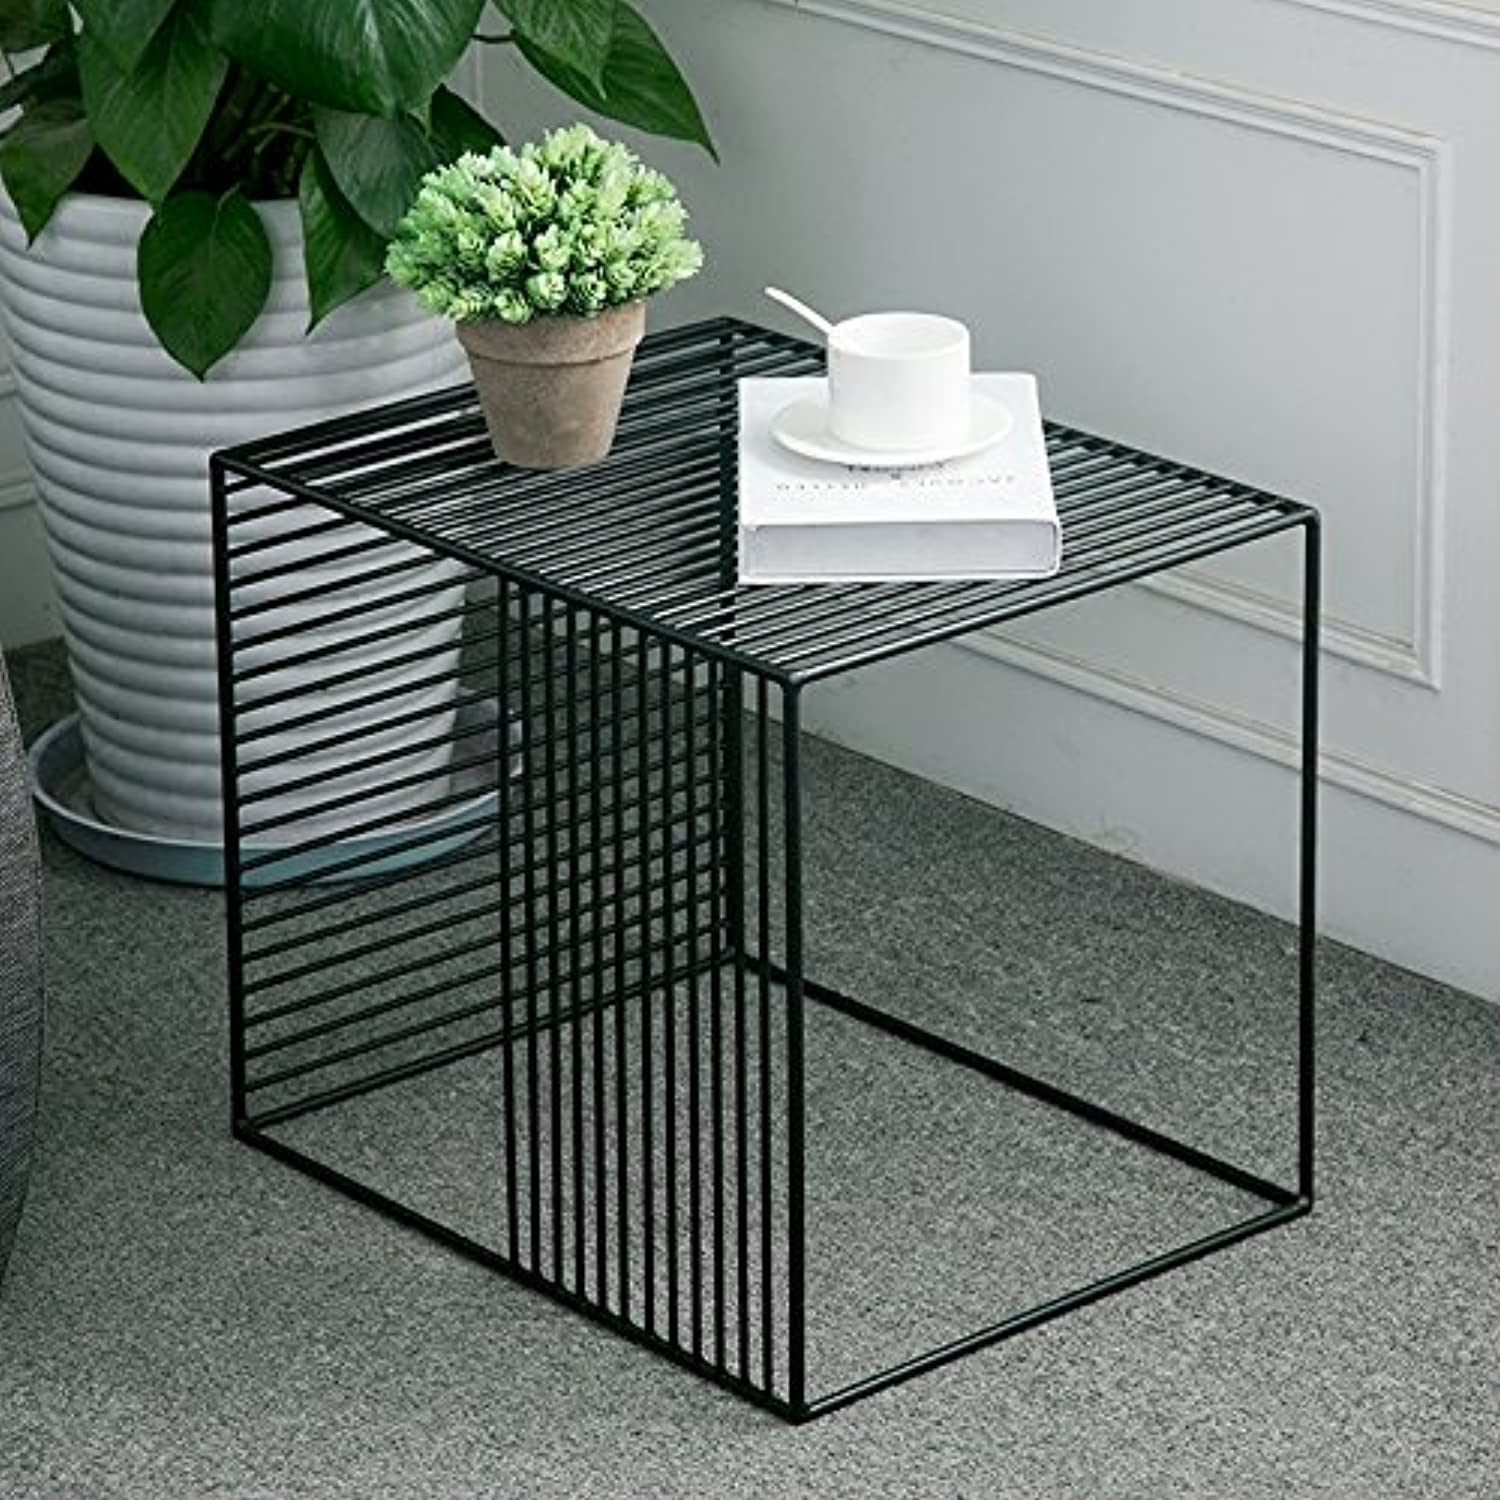 WGX Square Wrought Iron Coffee Table Outdoor Iron End Table Nesting Side Tables Plant Stand, Black, Set of One (B L19xW14.5xH15.7)